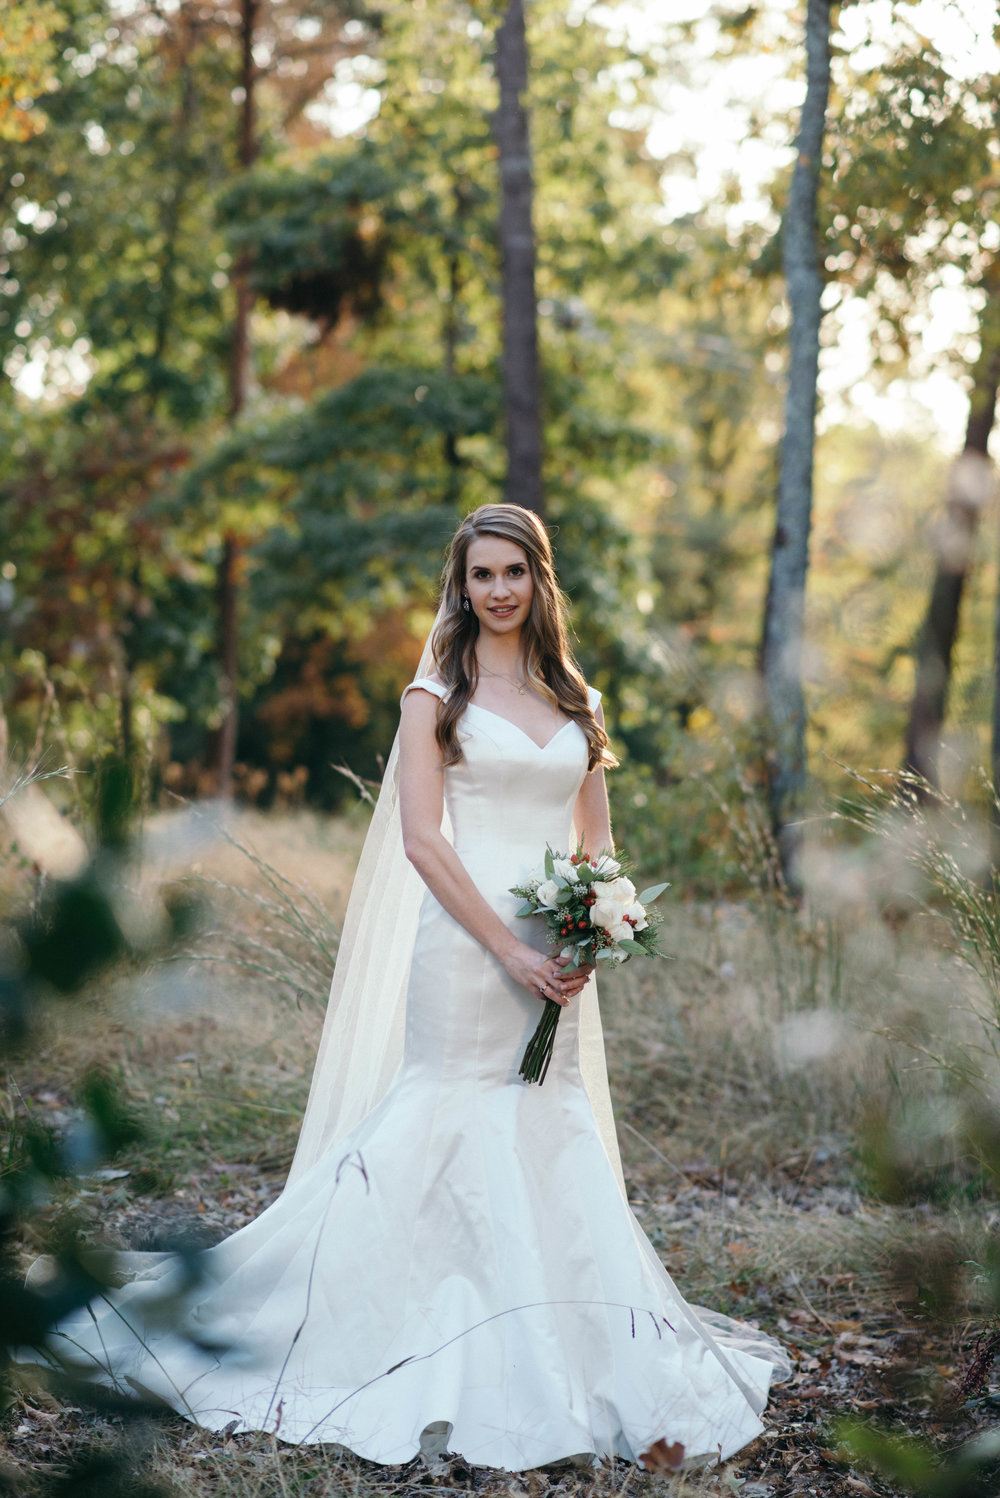 JuliaWilliams|Bridals|Color_MiraPhotographs-45.jpg